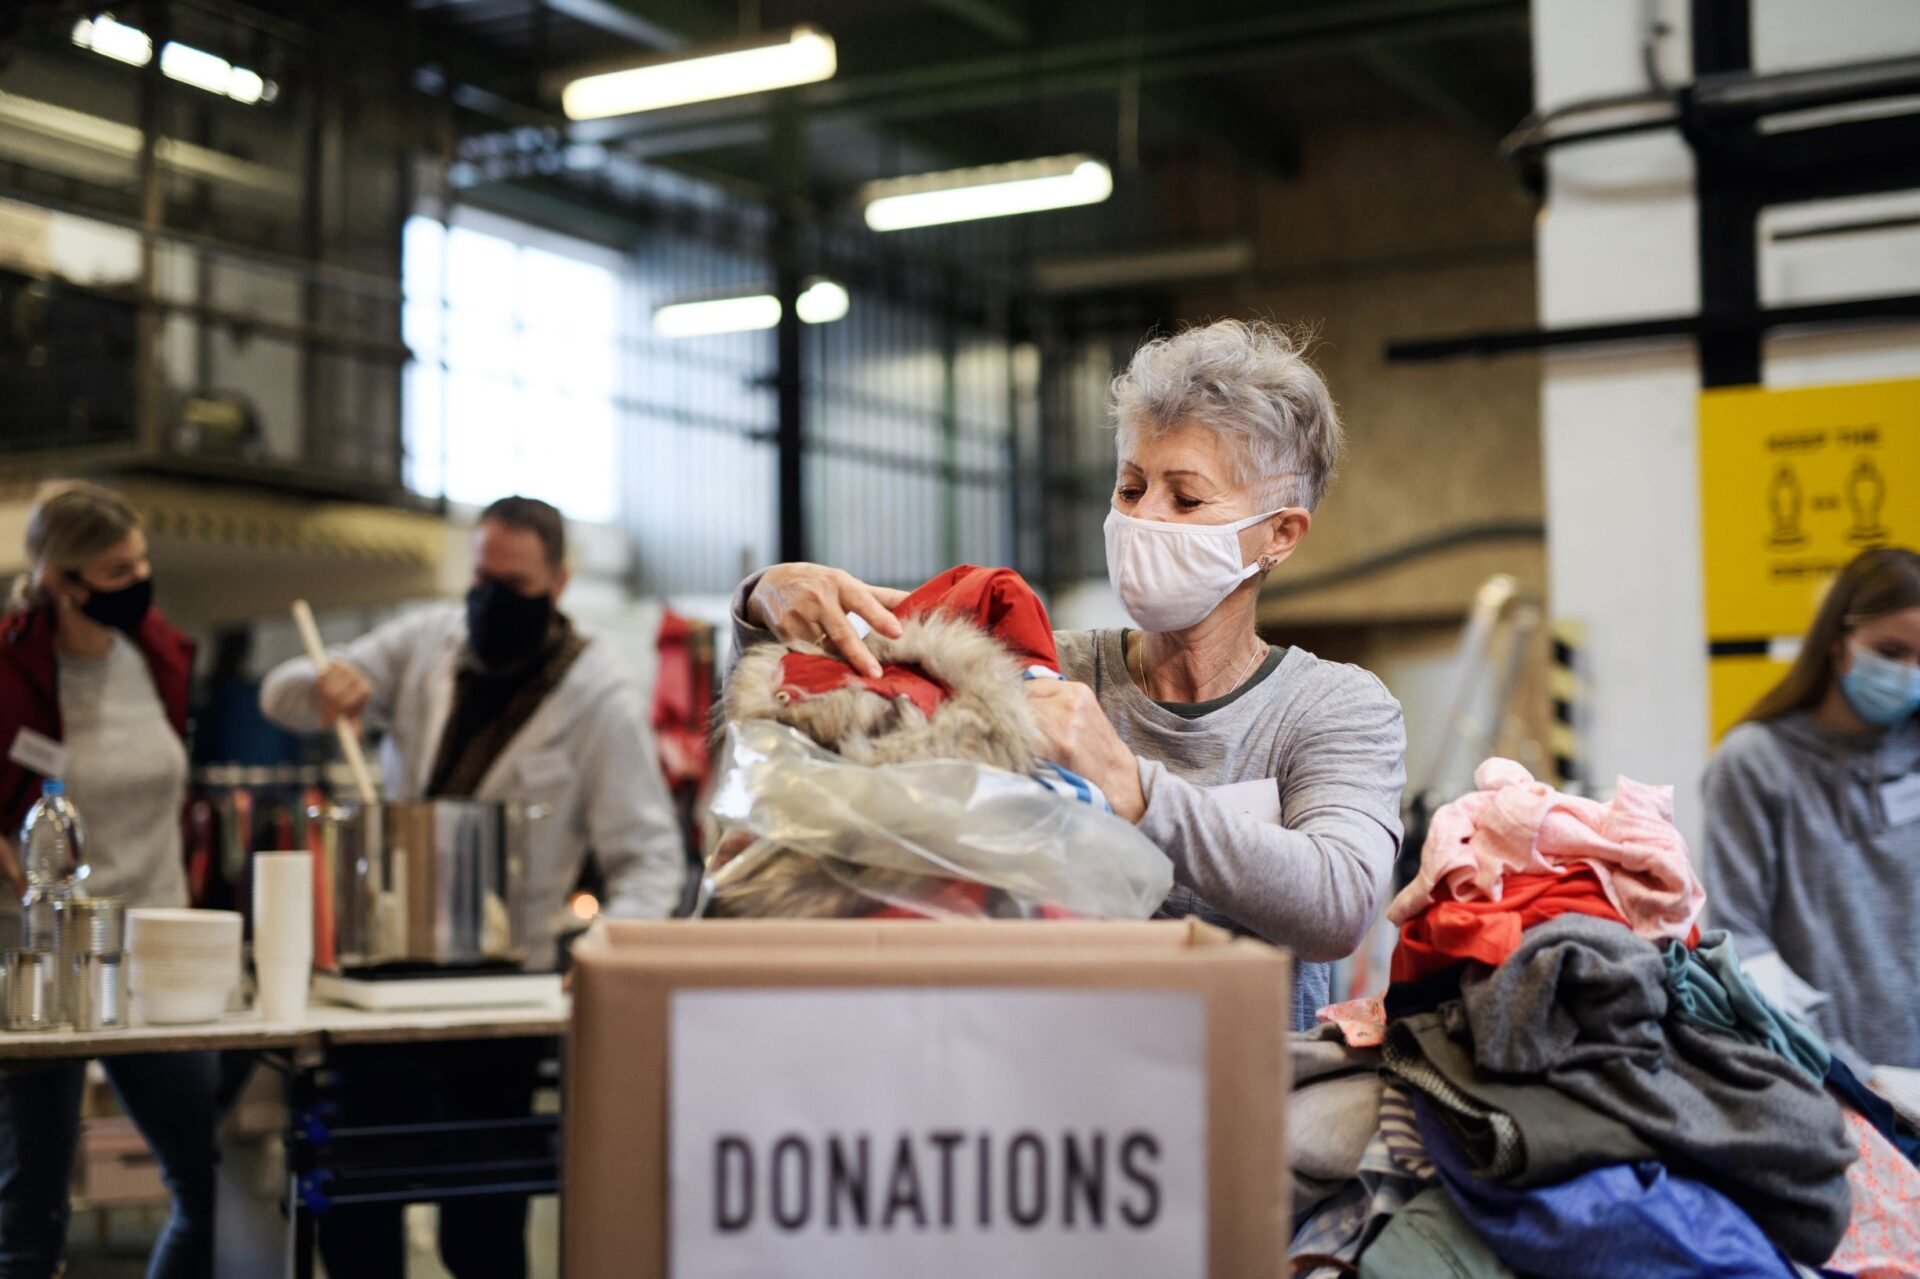 New data suggests volunteering impacted harder by COVID-19 than paid work